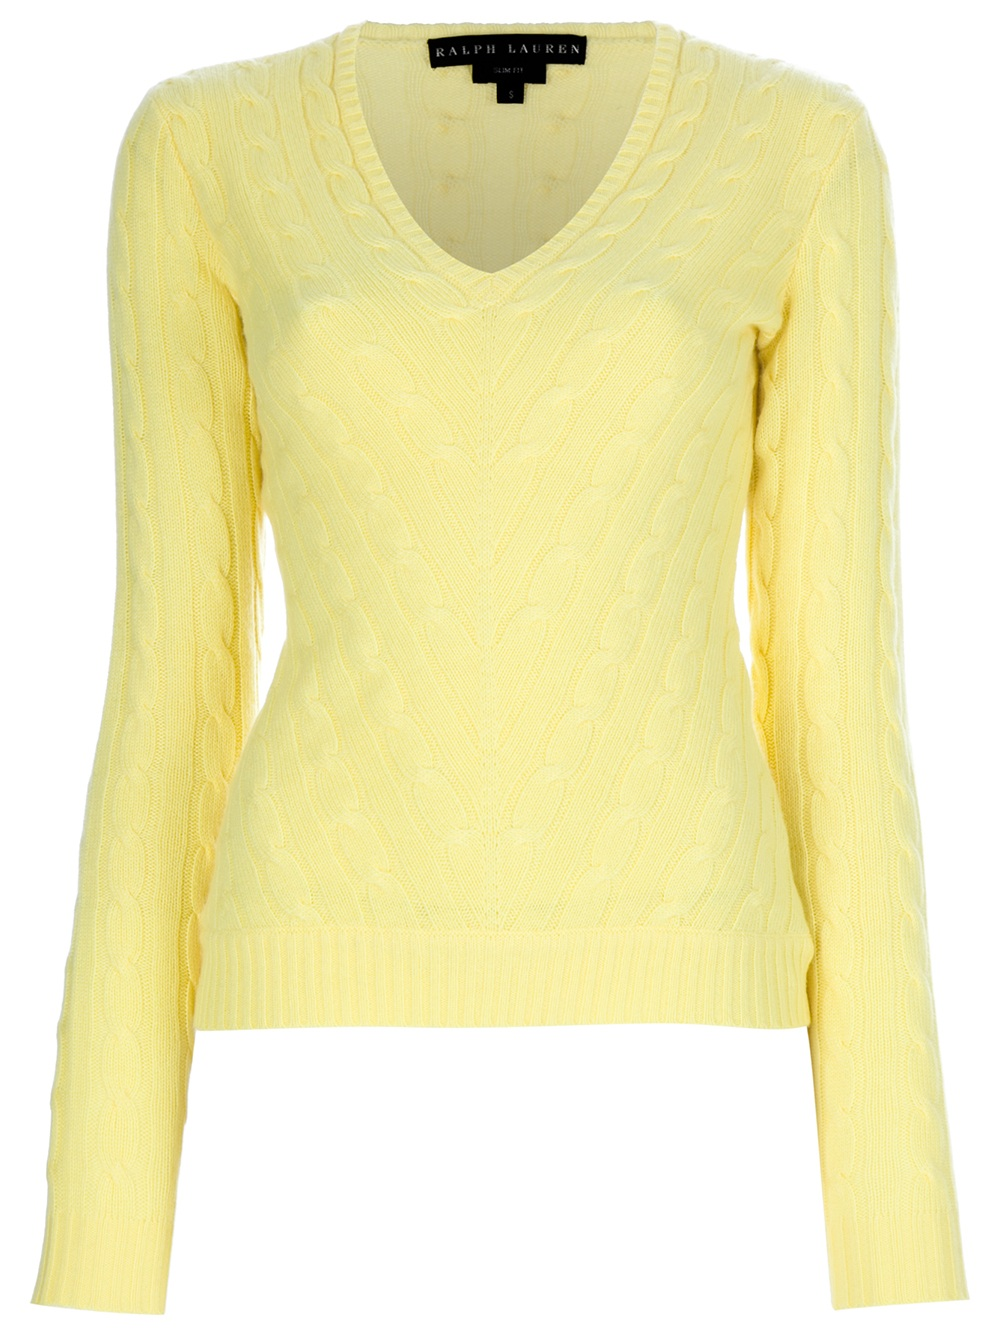 Ralph lauren black label Cable Knit Cashmere Sweater in Yellow | Lyst